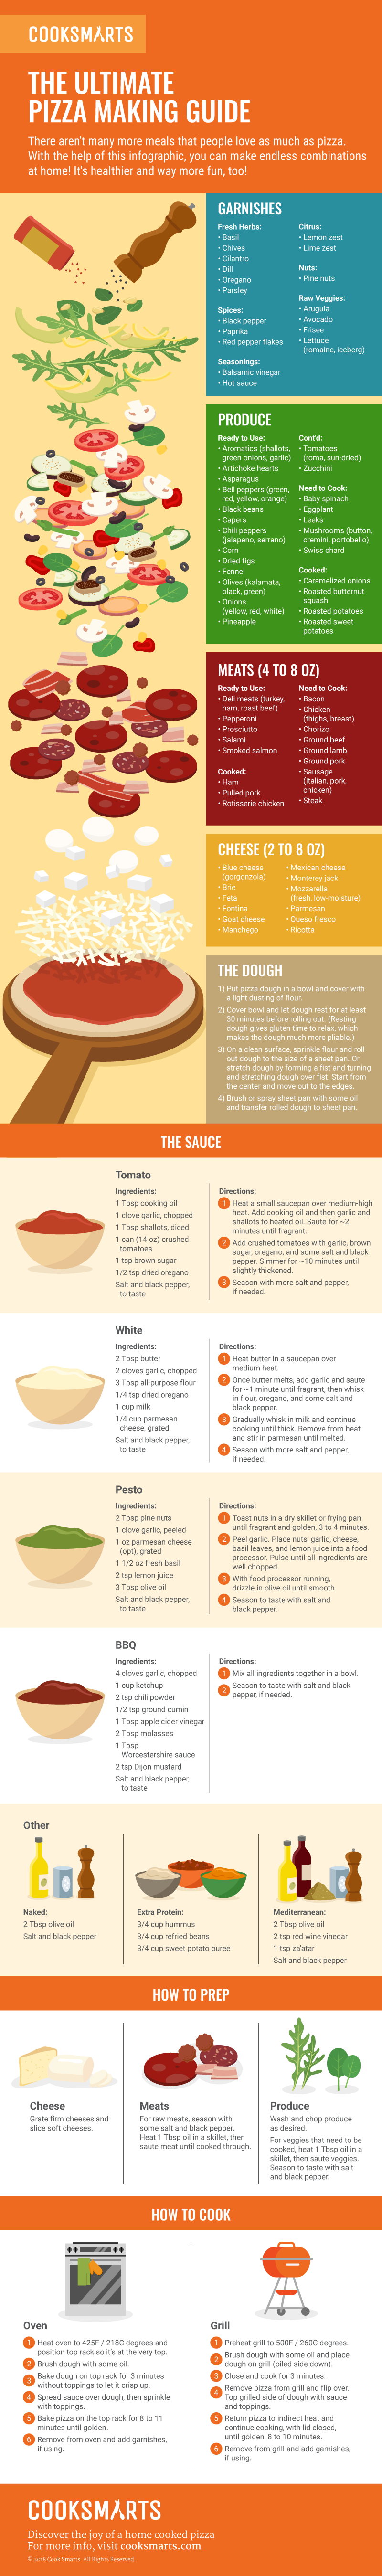 The Ultimate Pizza Making Guide [Infographic] | Cook Smarts